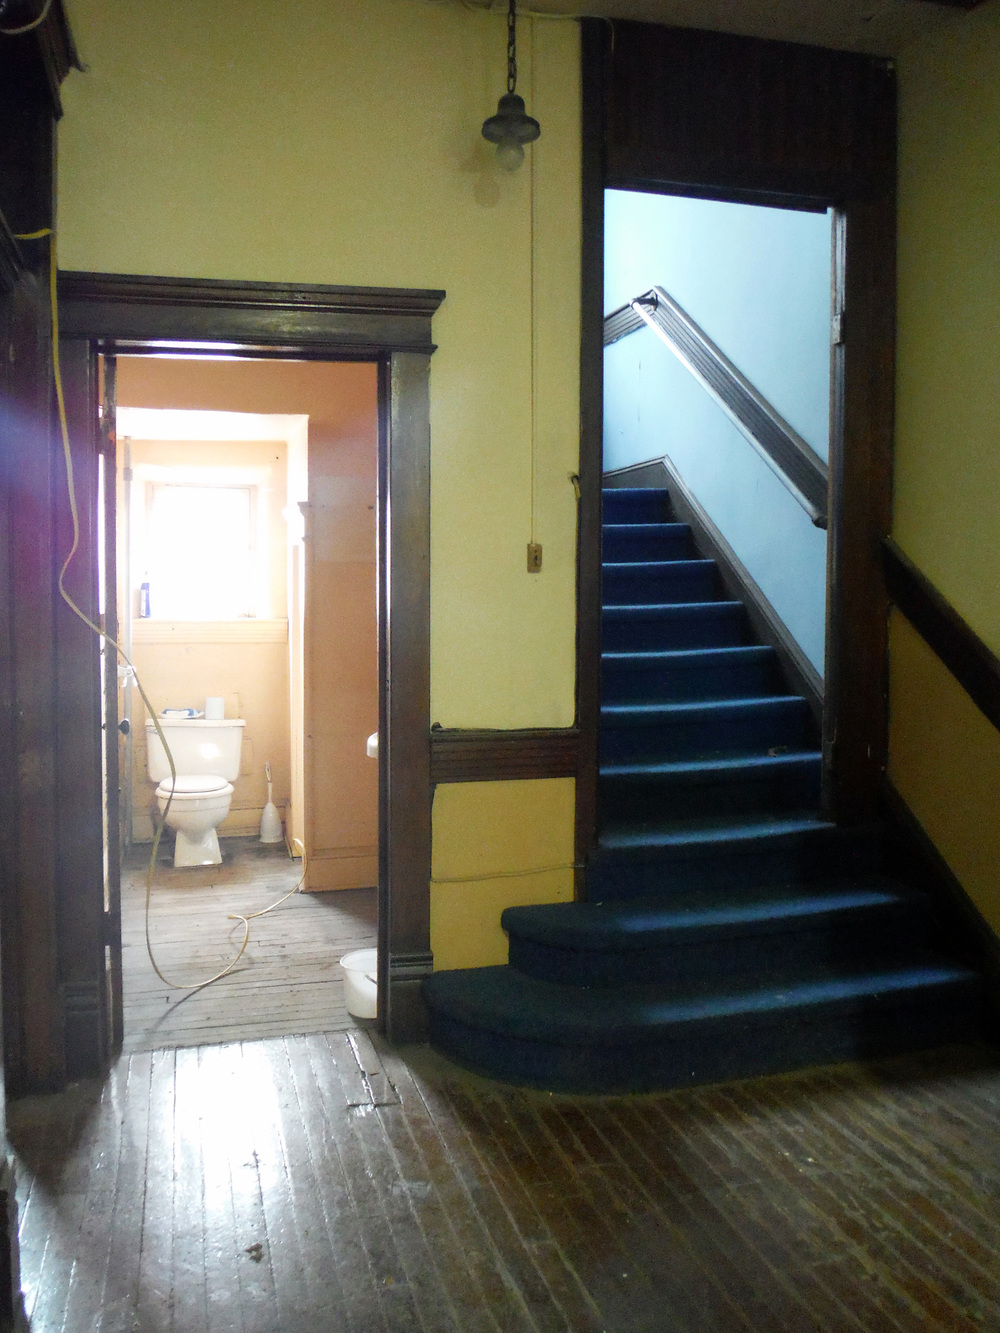 The second floor landing, with stairs leading up to the Masonic lodge.  Photo by Sydney Haltom, March 2015.